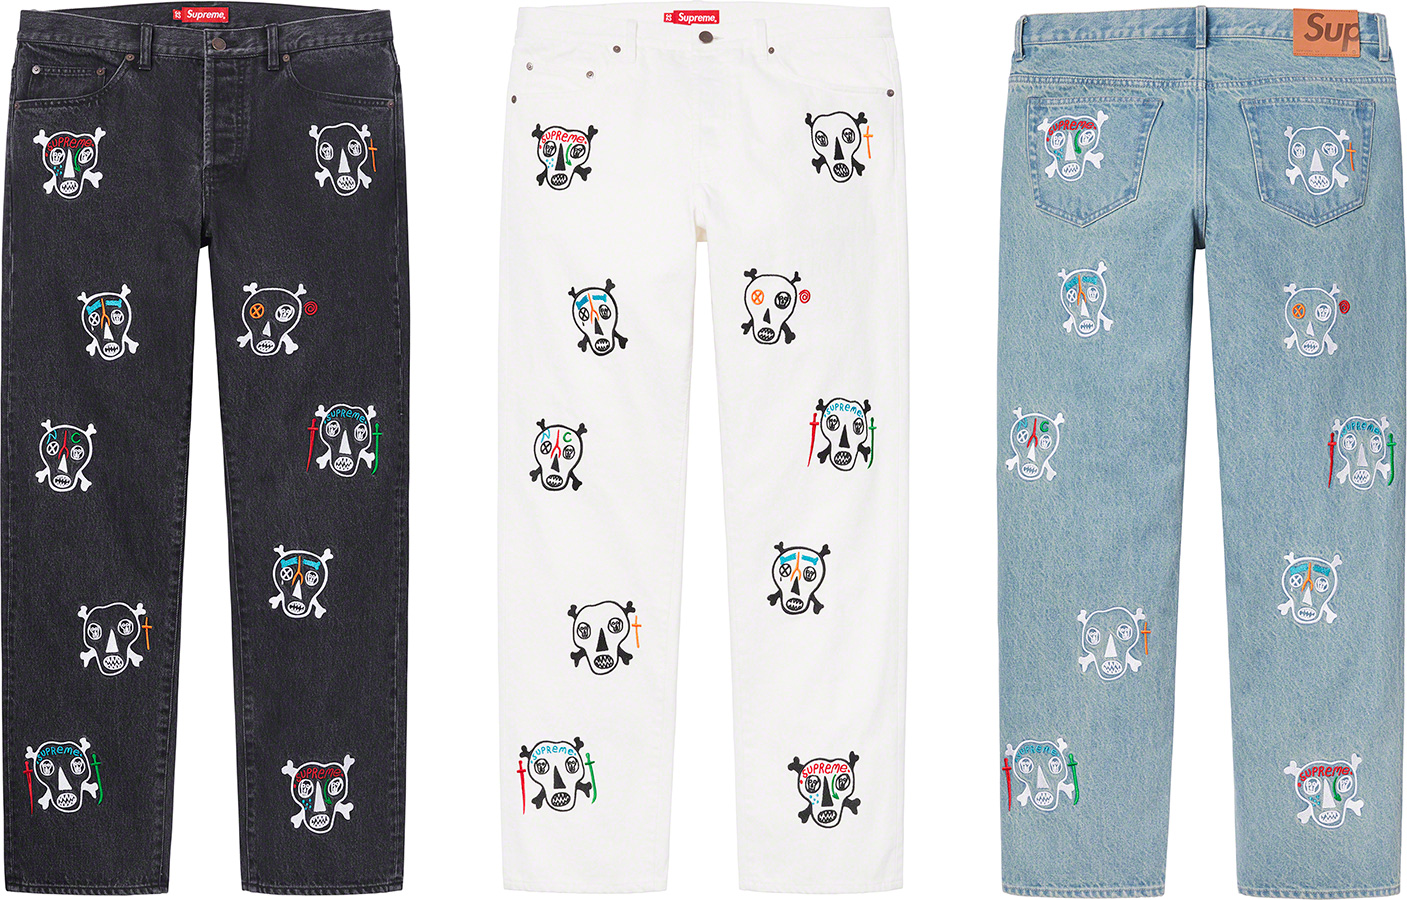 supreme-21ss-spring-summer-clayton-patterson-skulls-embroidered-regular-jean